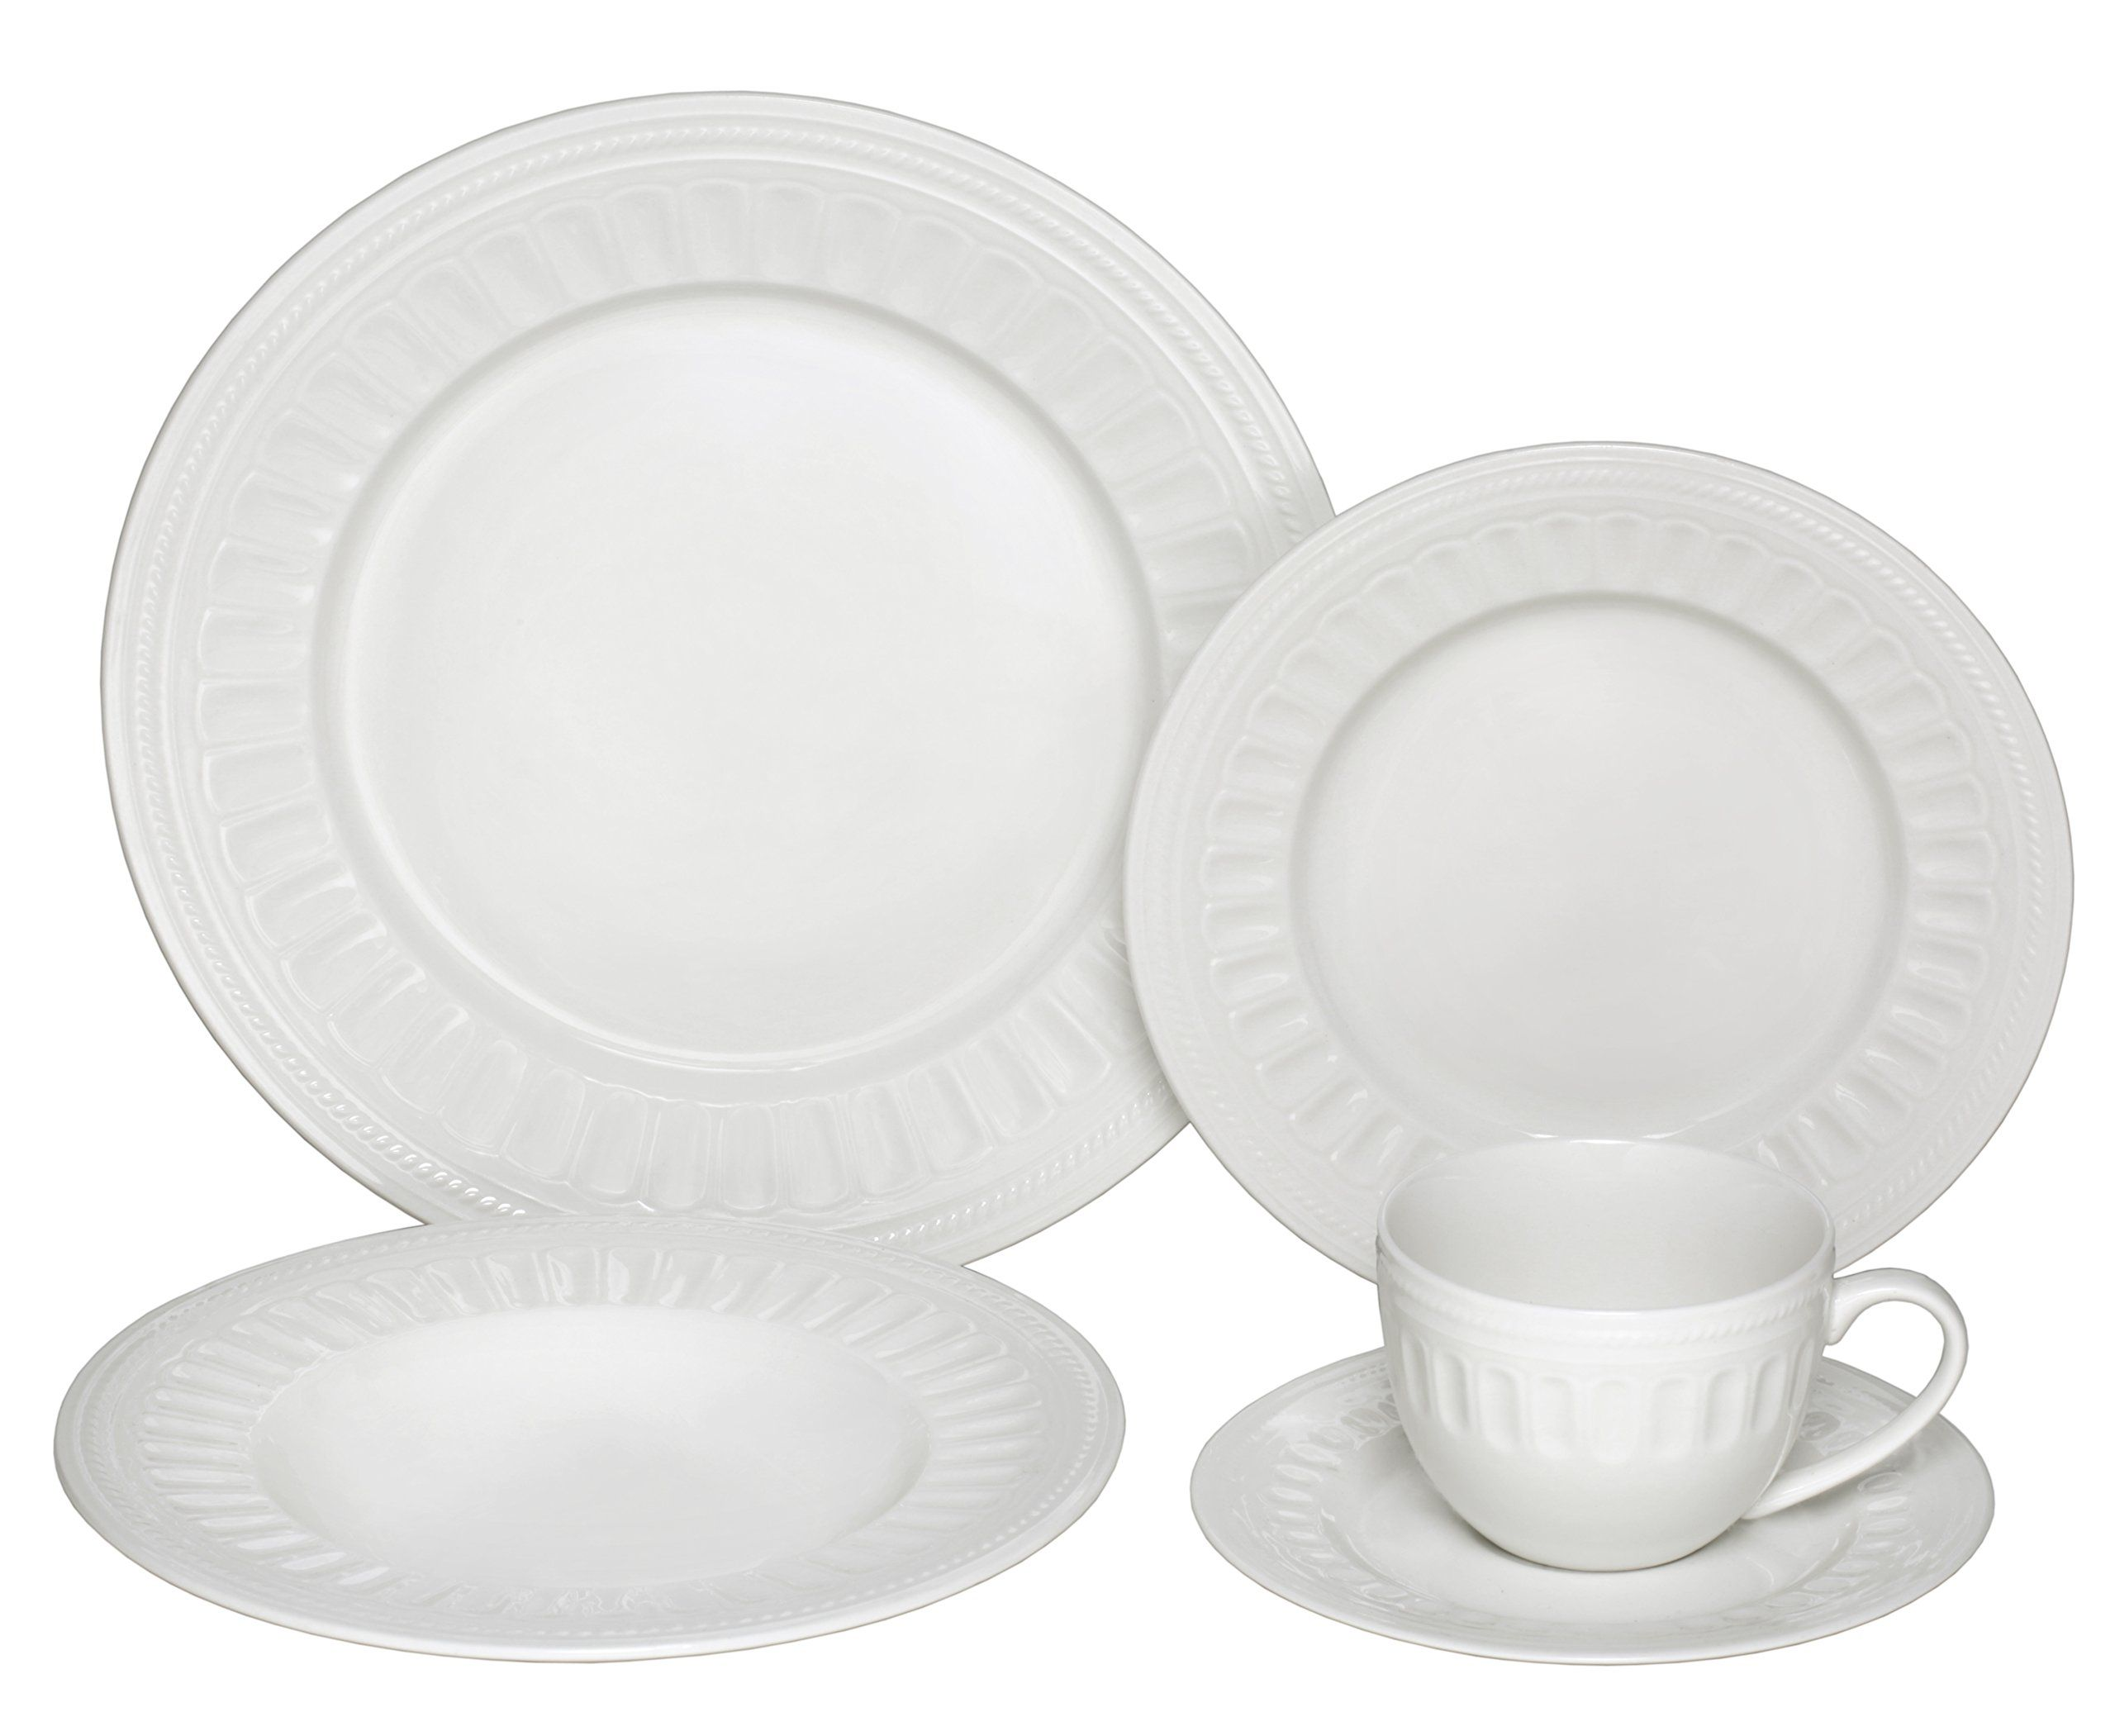 Melange 40-Piece Porcelain Dinnerware Set (English Lace) | Service for 8 |  sc 1 st  Pinterest & Melange 40-Piece Porcelain Dinnerware Set (English Lace) | Service ...